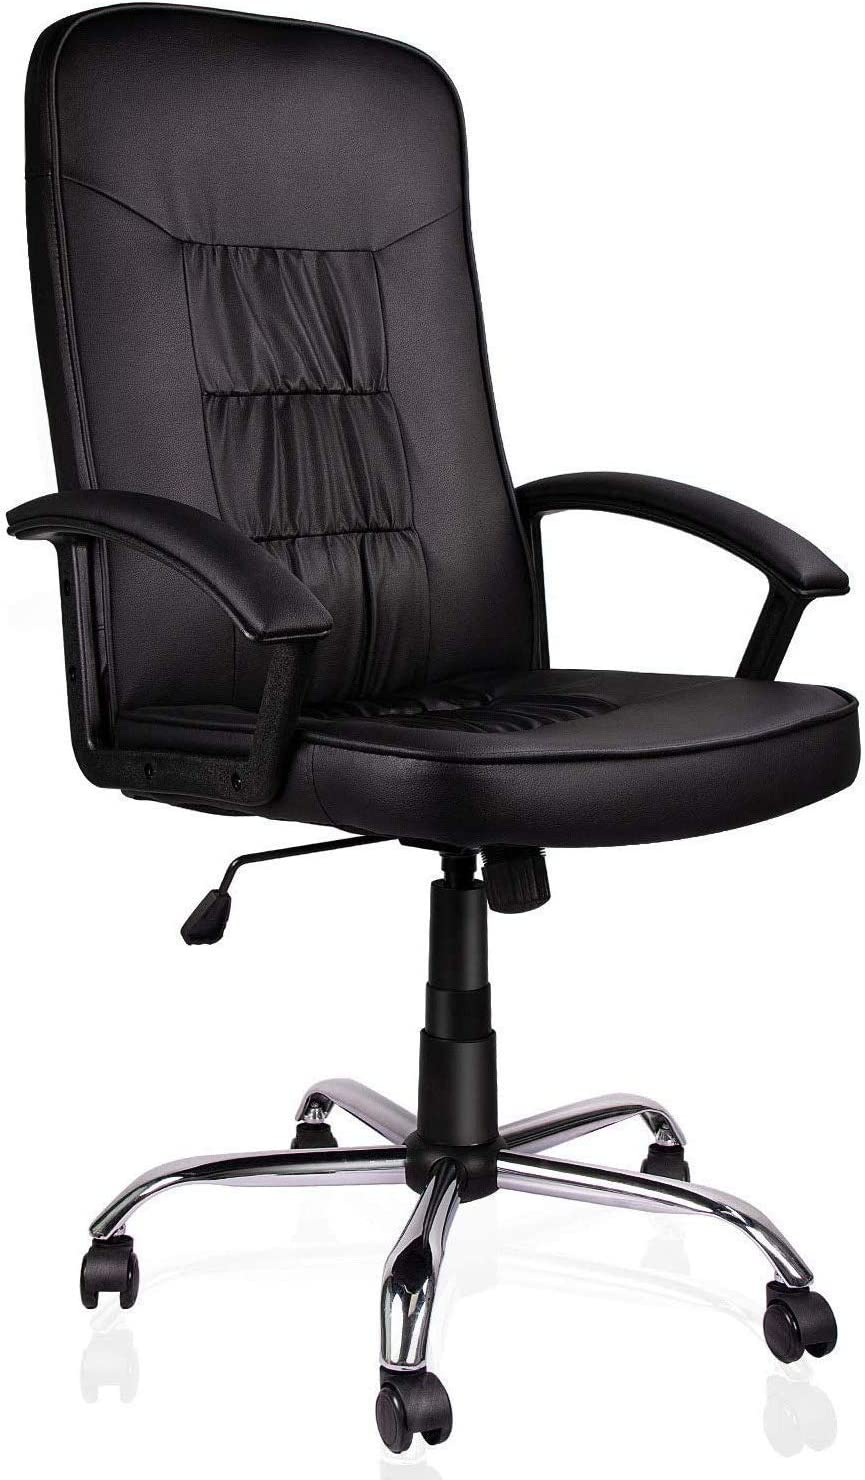 Smugdesk Office High Back Bonded Leather Game Racing Chair